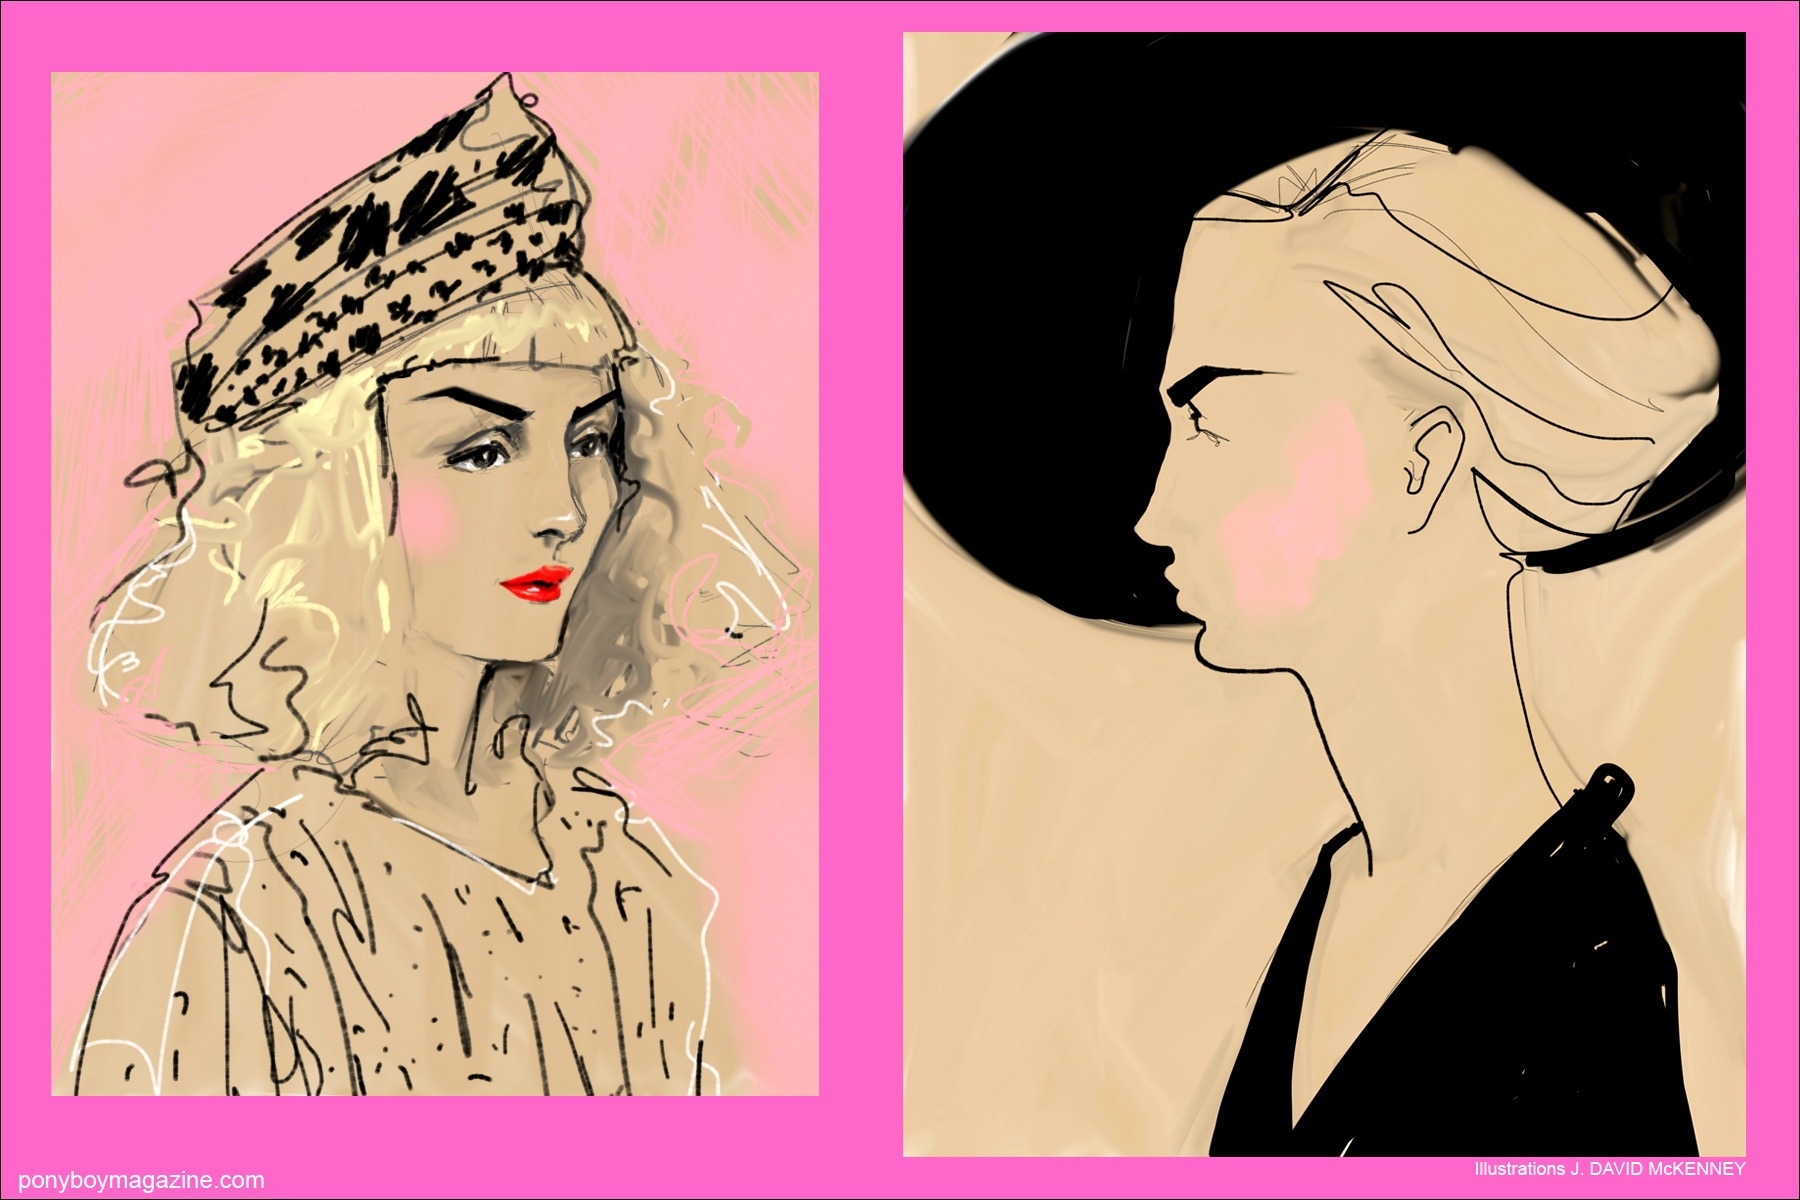 Illustrations of New York City model Stella Rose Saint Clair for Ponyboy Magazine.